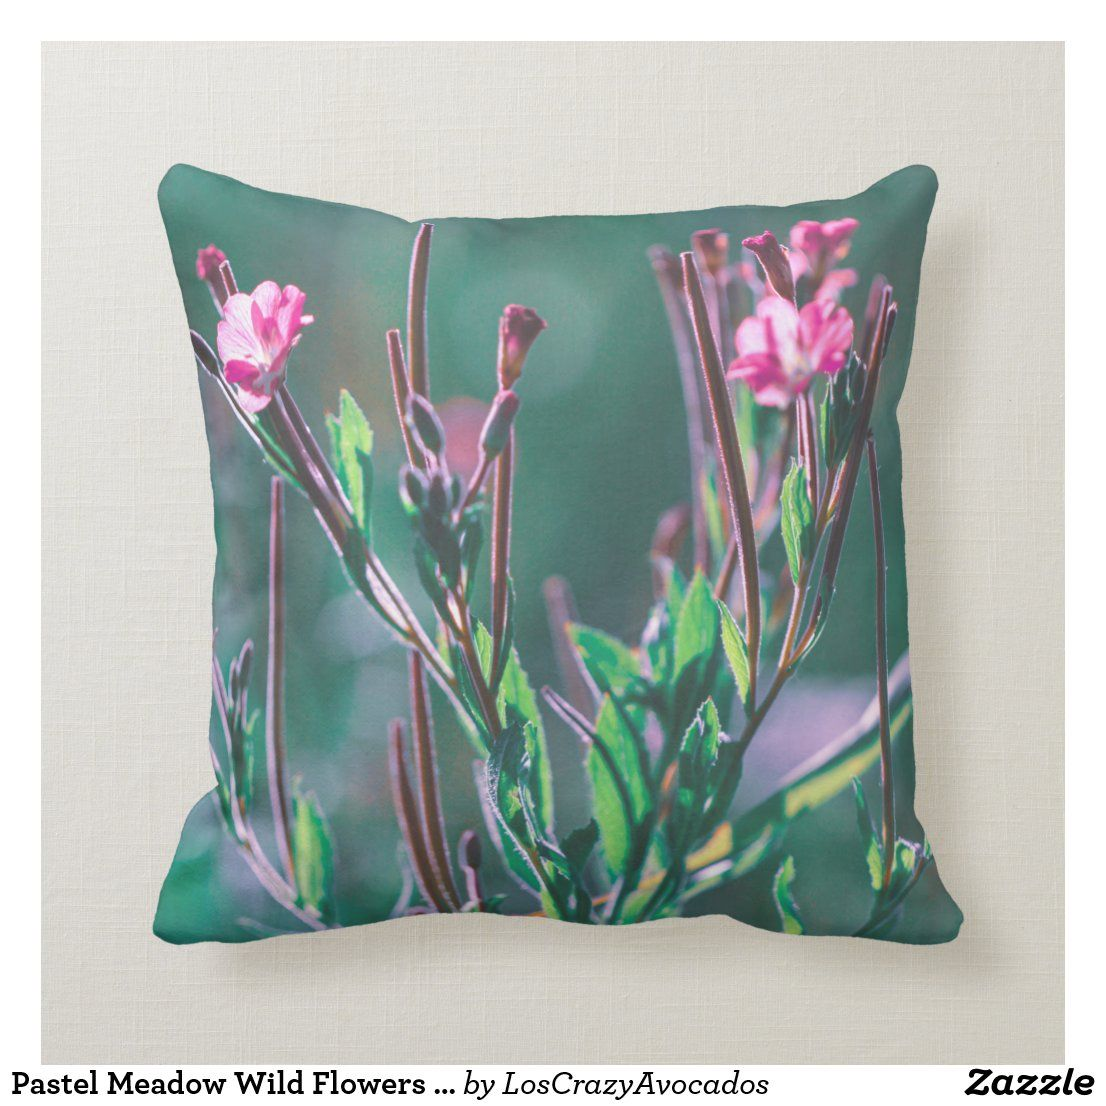 Pastel Meadow Wild Flowers Nature Pillow Cushion In 2020 Natural Pillows Floral Pillows Pillow Cushion